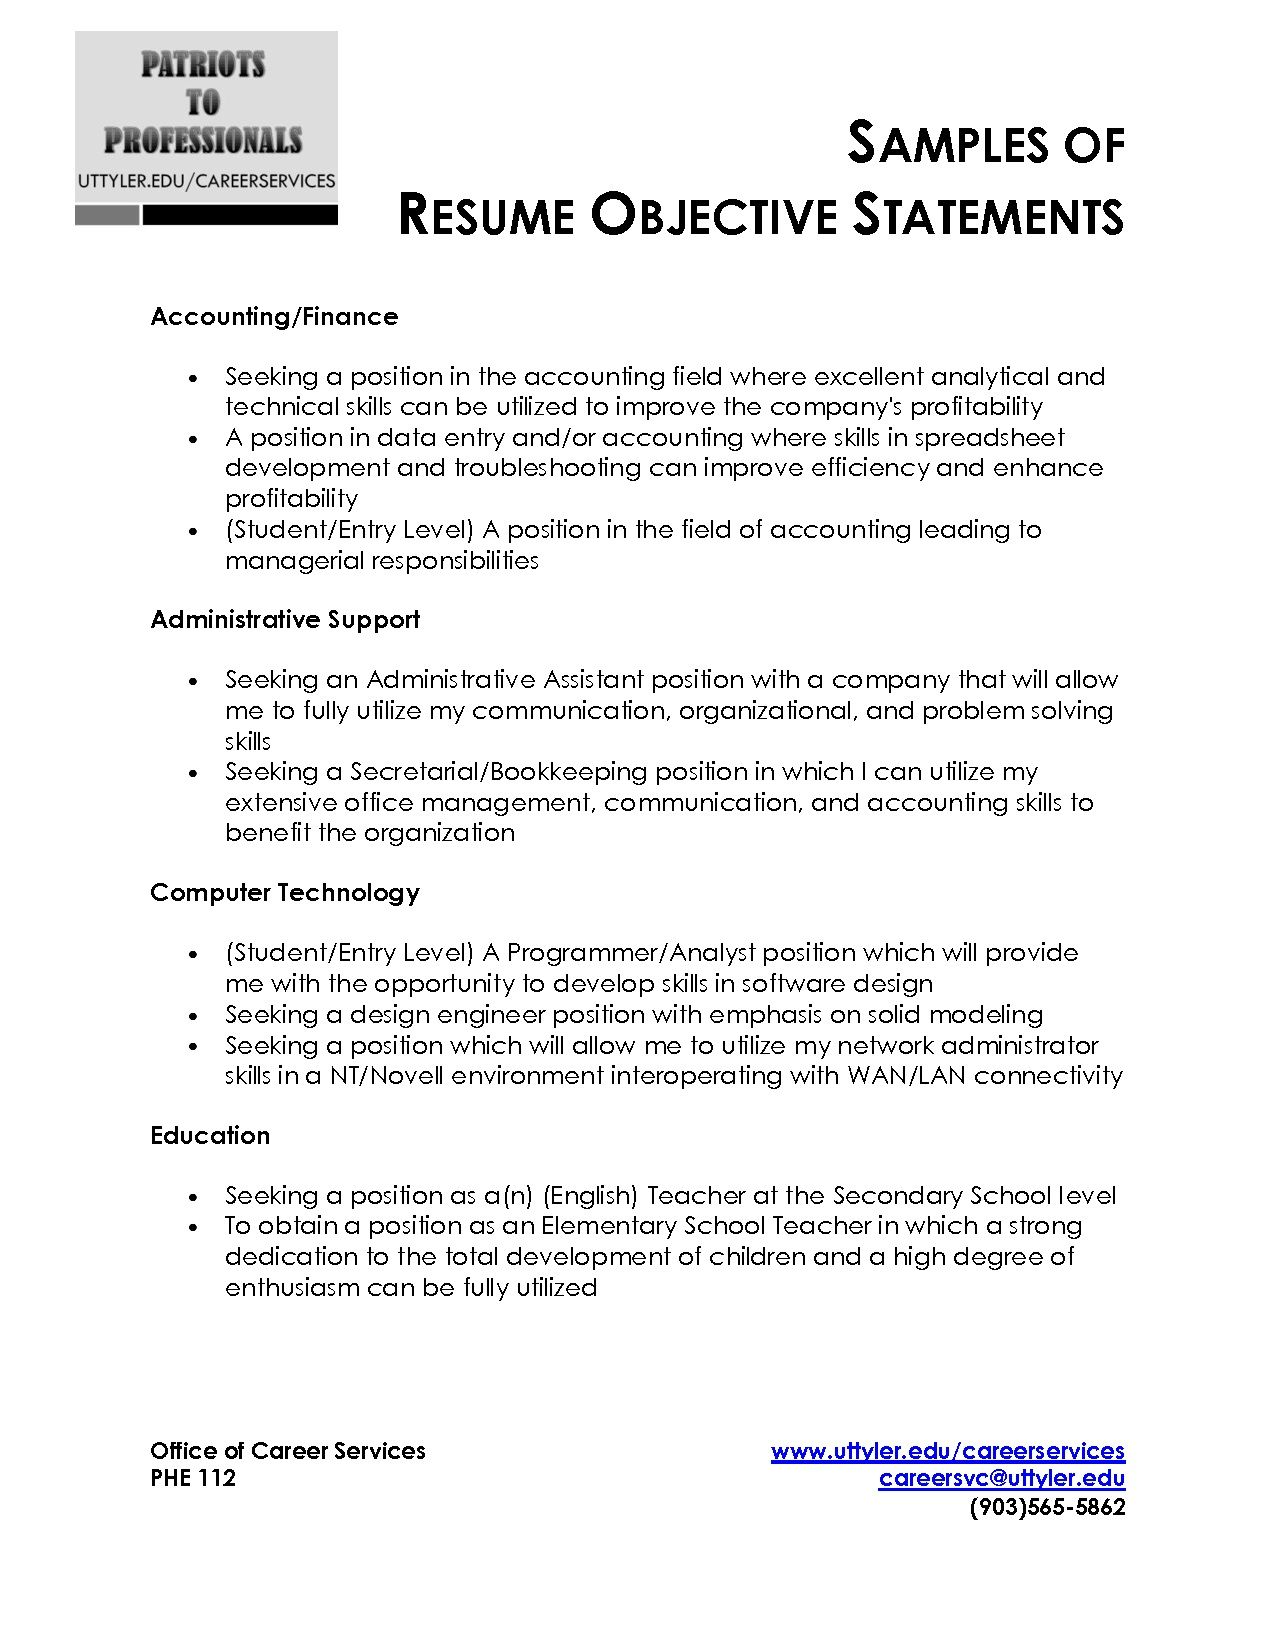 sample resume objective statement adsbygoogle windowadsbygoogle - I Need An Objective For My Resume